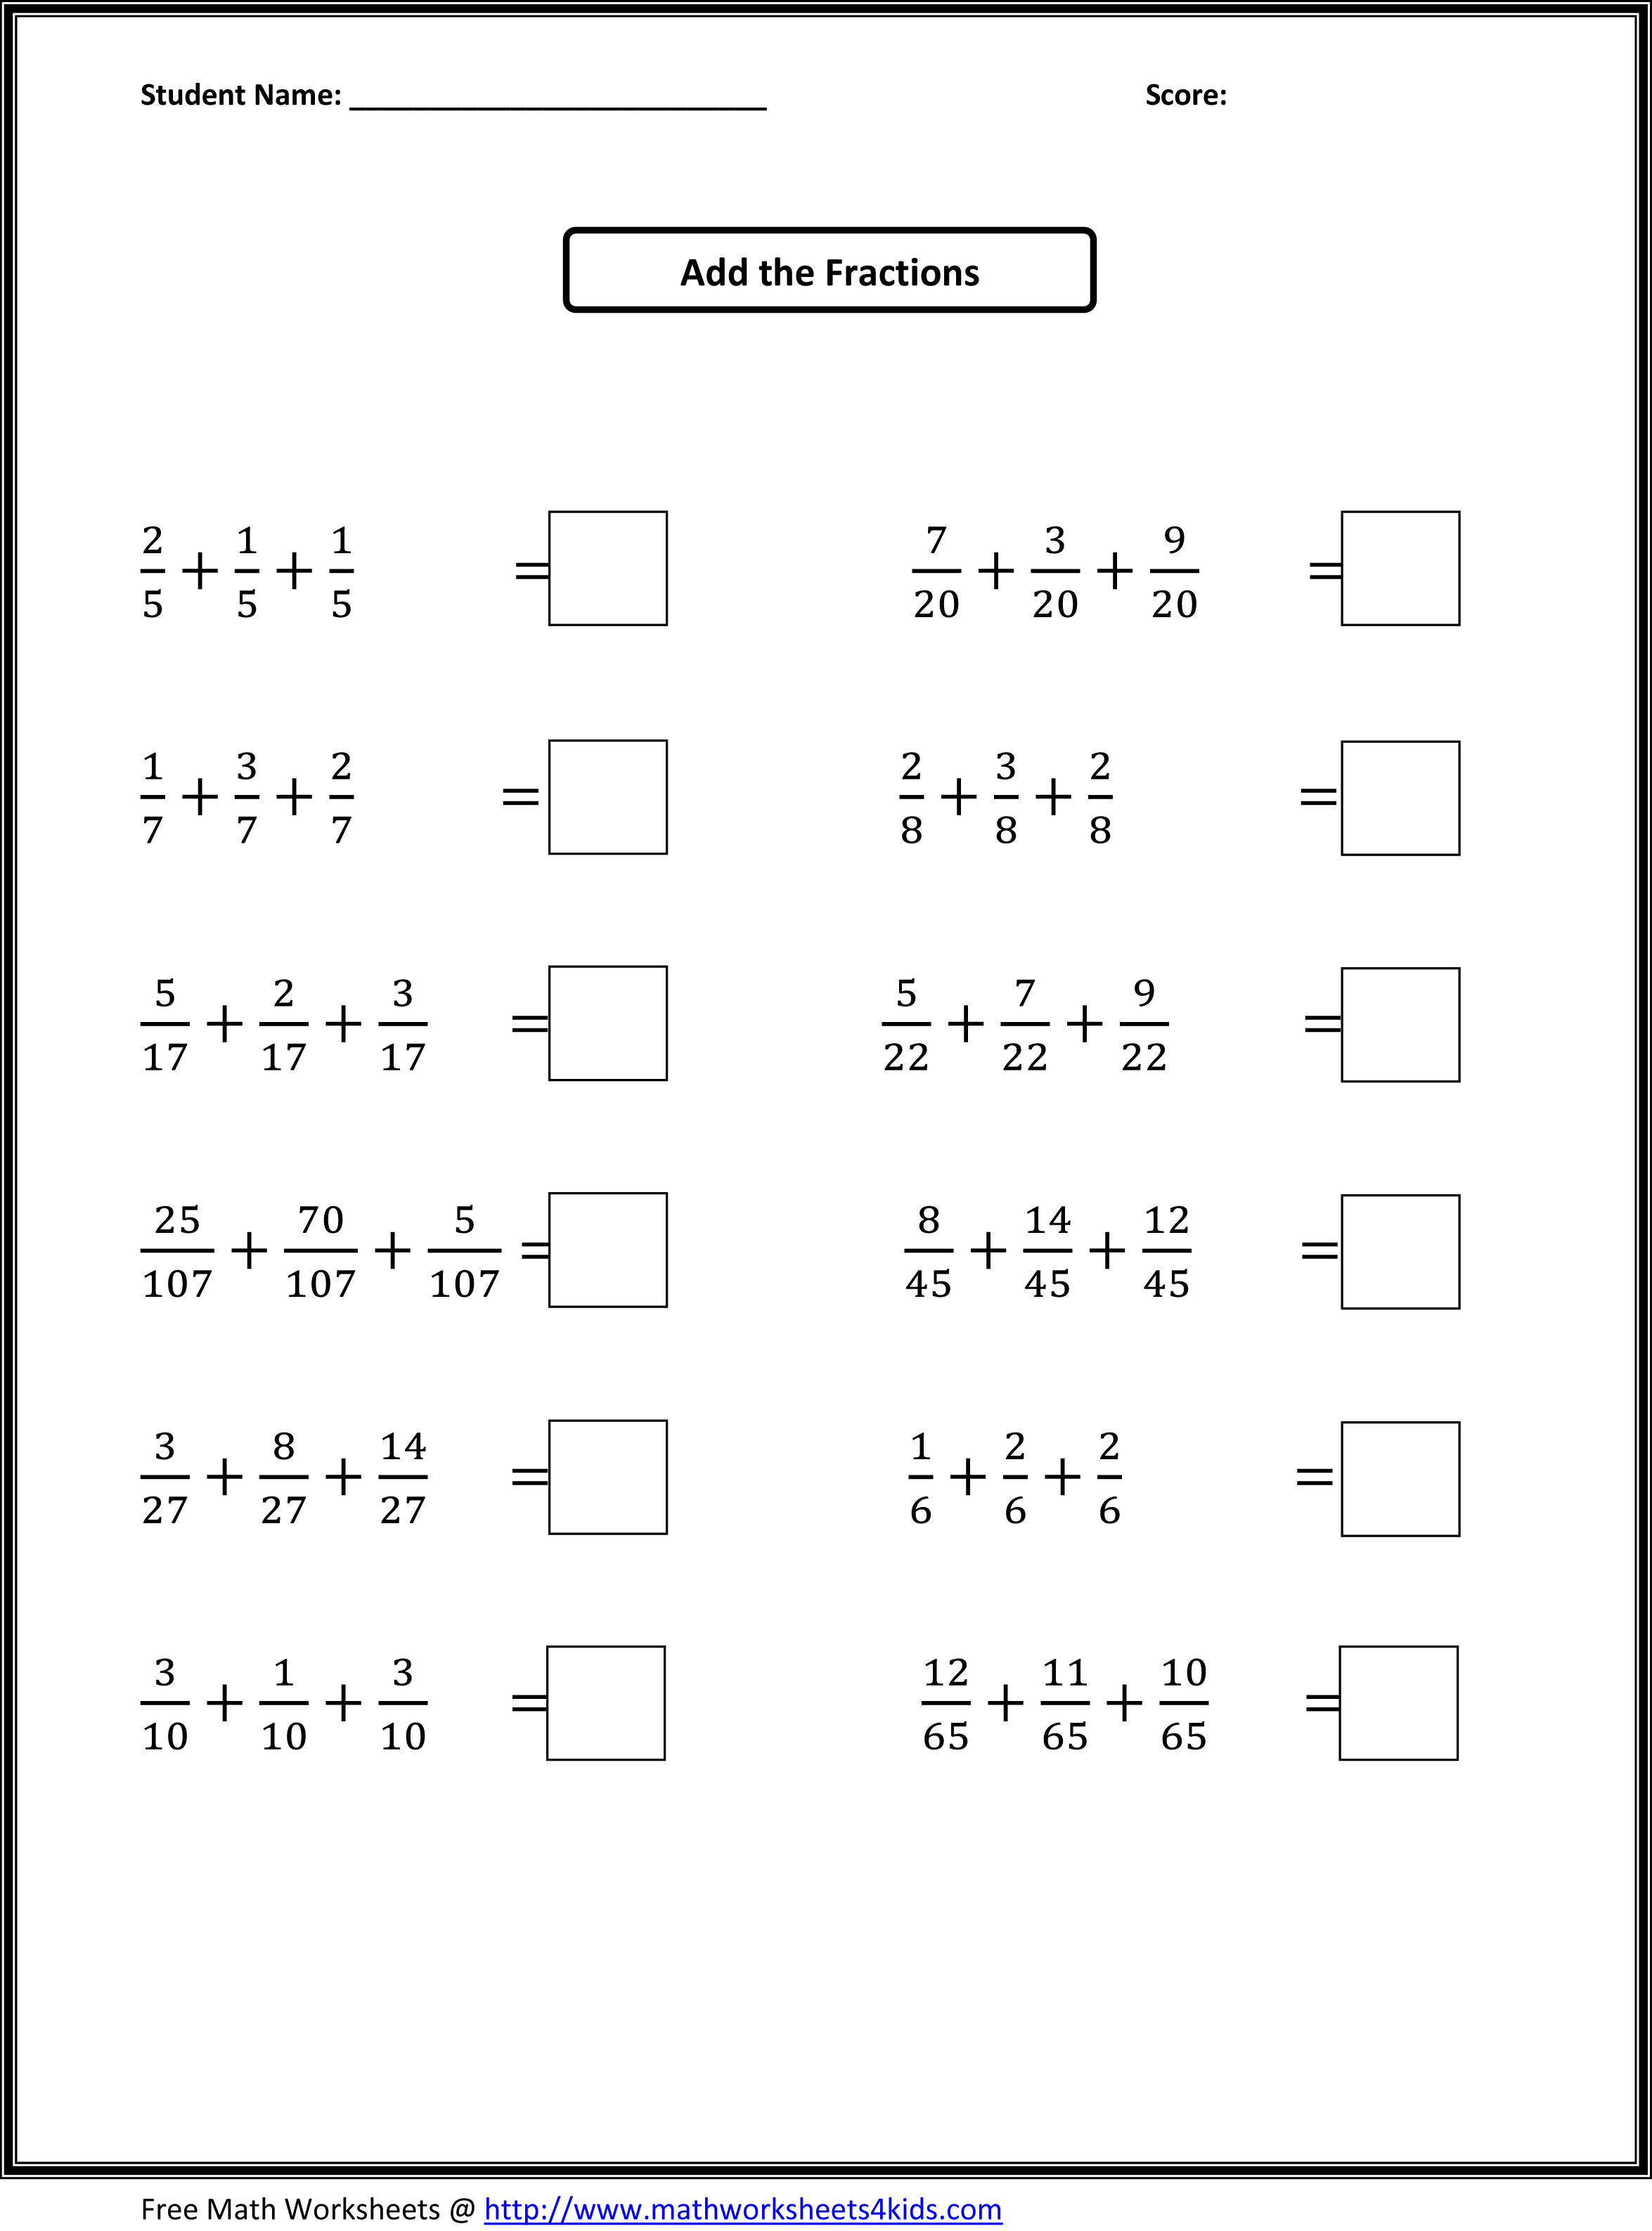 math worksheet : year 5 multiplying fractions worksheets  sheets : Free Math Worksheets For 4th Graders